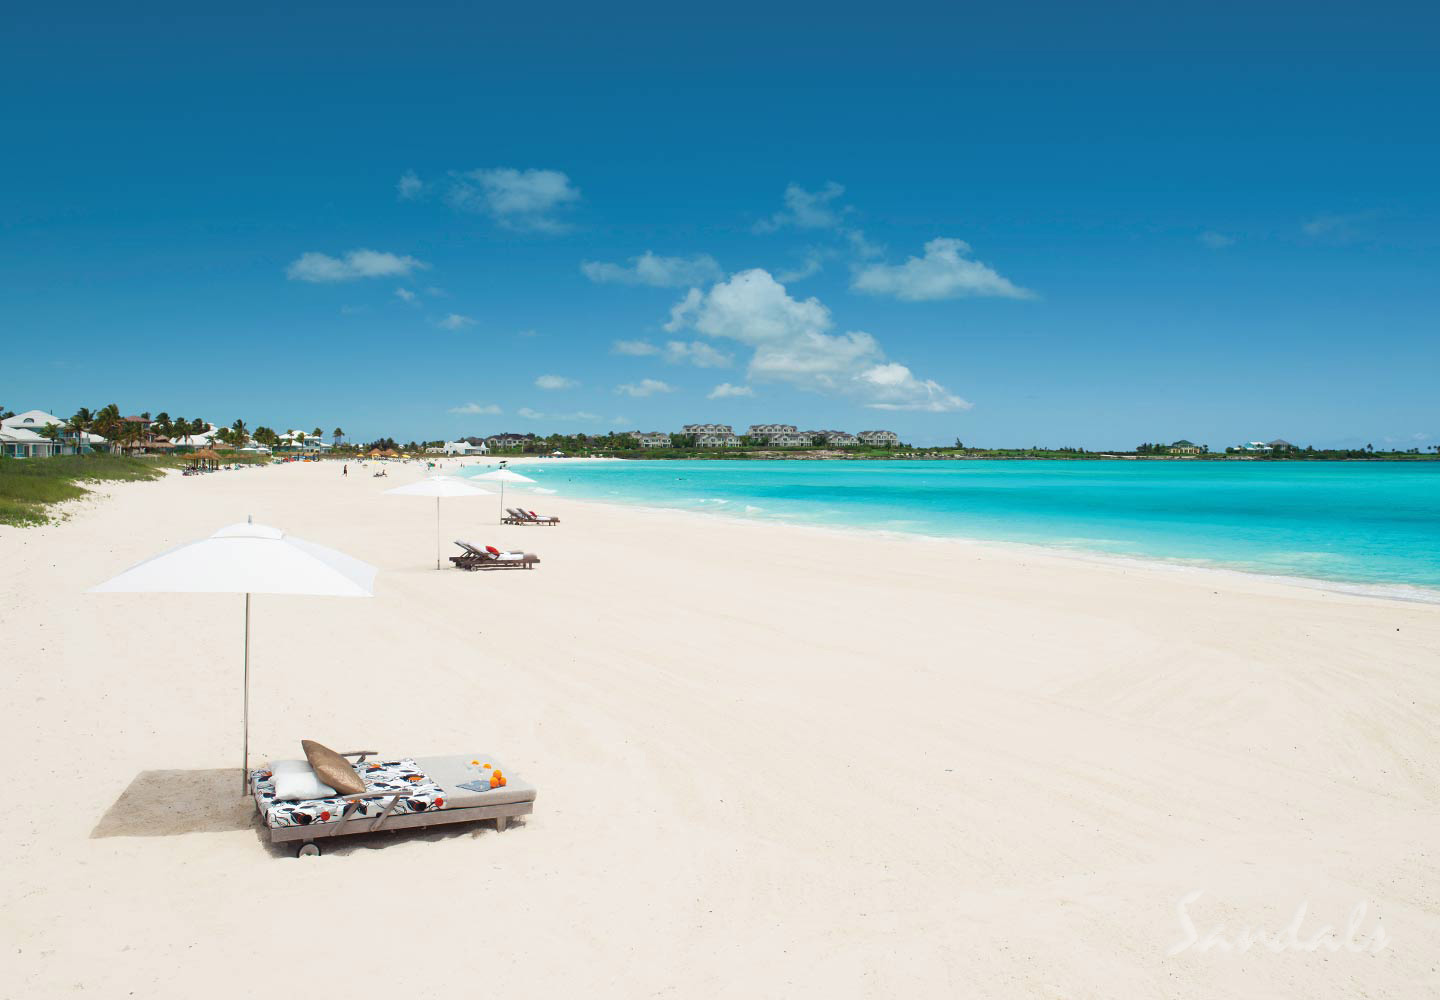 Travel Agency All-Inclusive Resort Sandals Emerald Bay 012